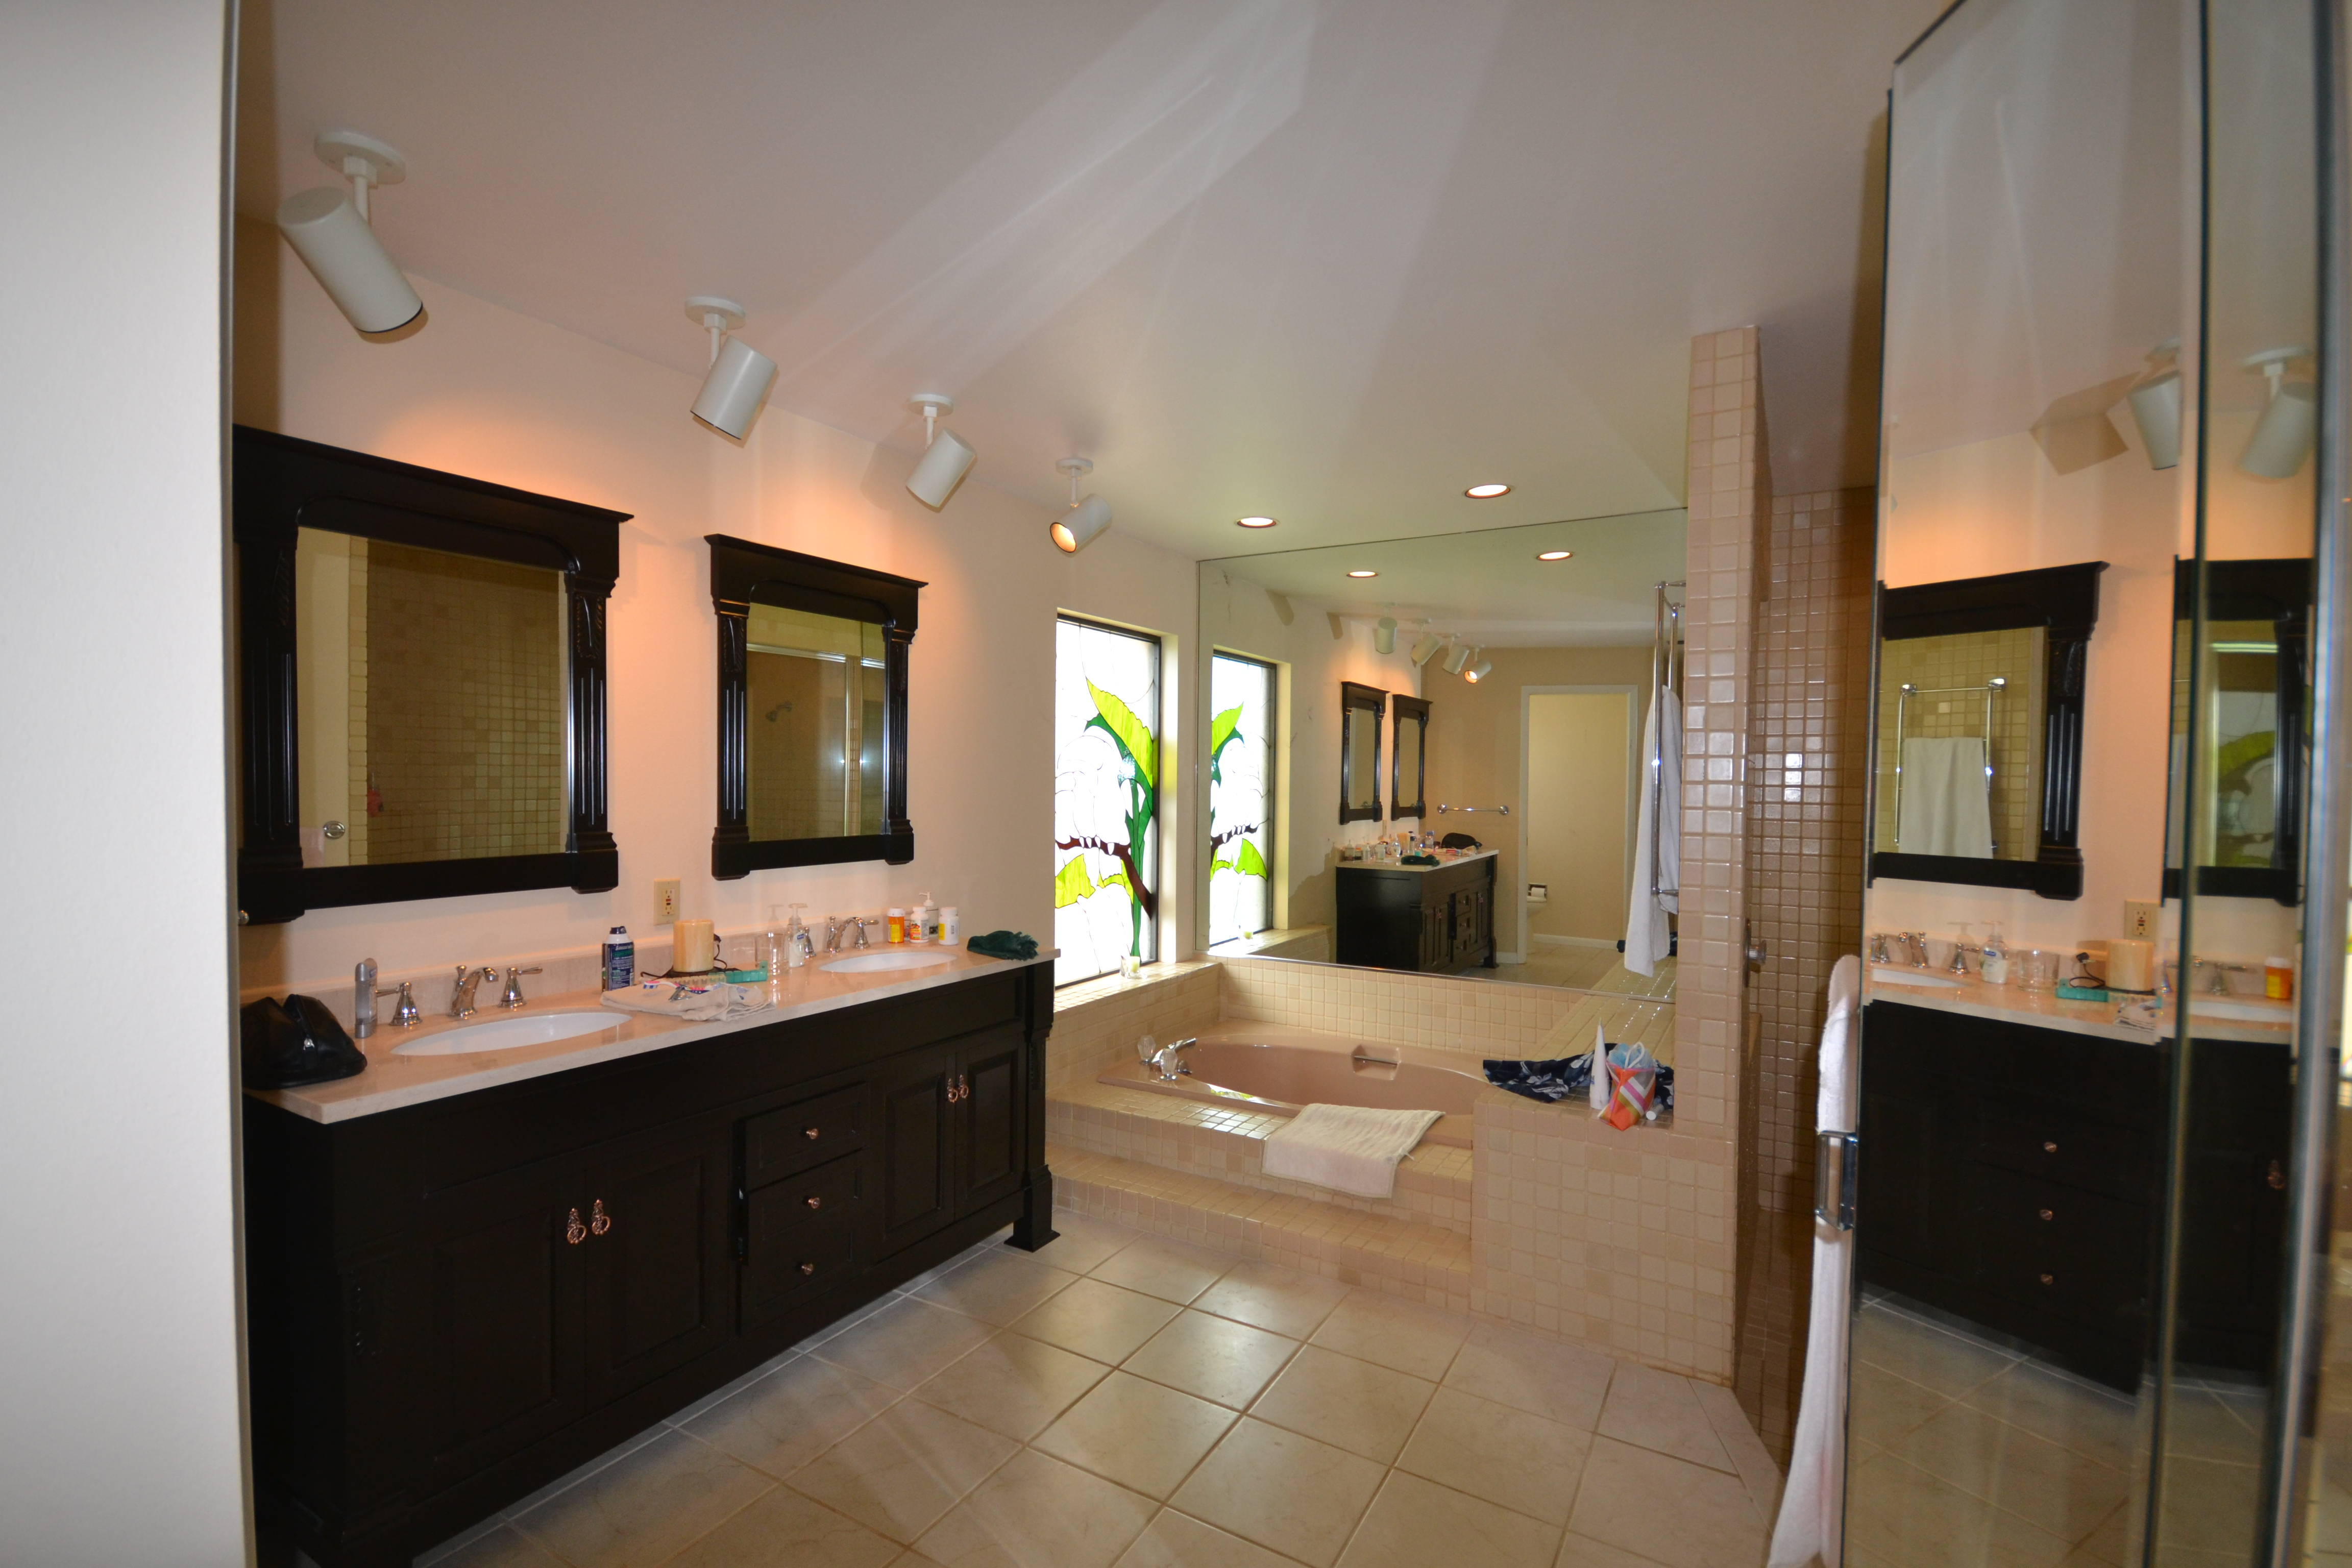 MASTER BATHROOM ROOM_INTERIOR DESIGN_SARASOTA COUNTRY CLUB_BEFORE